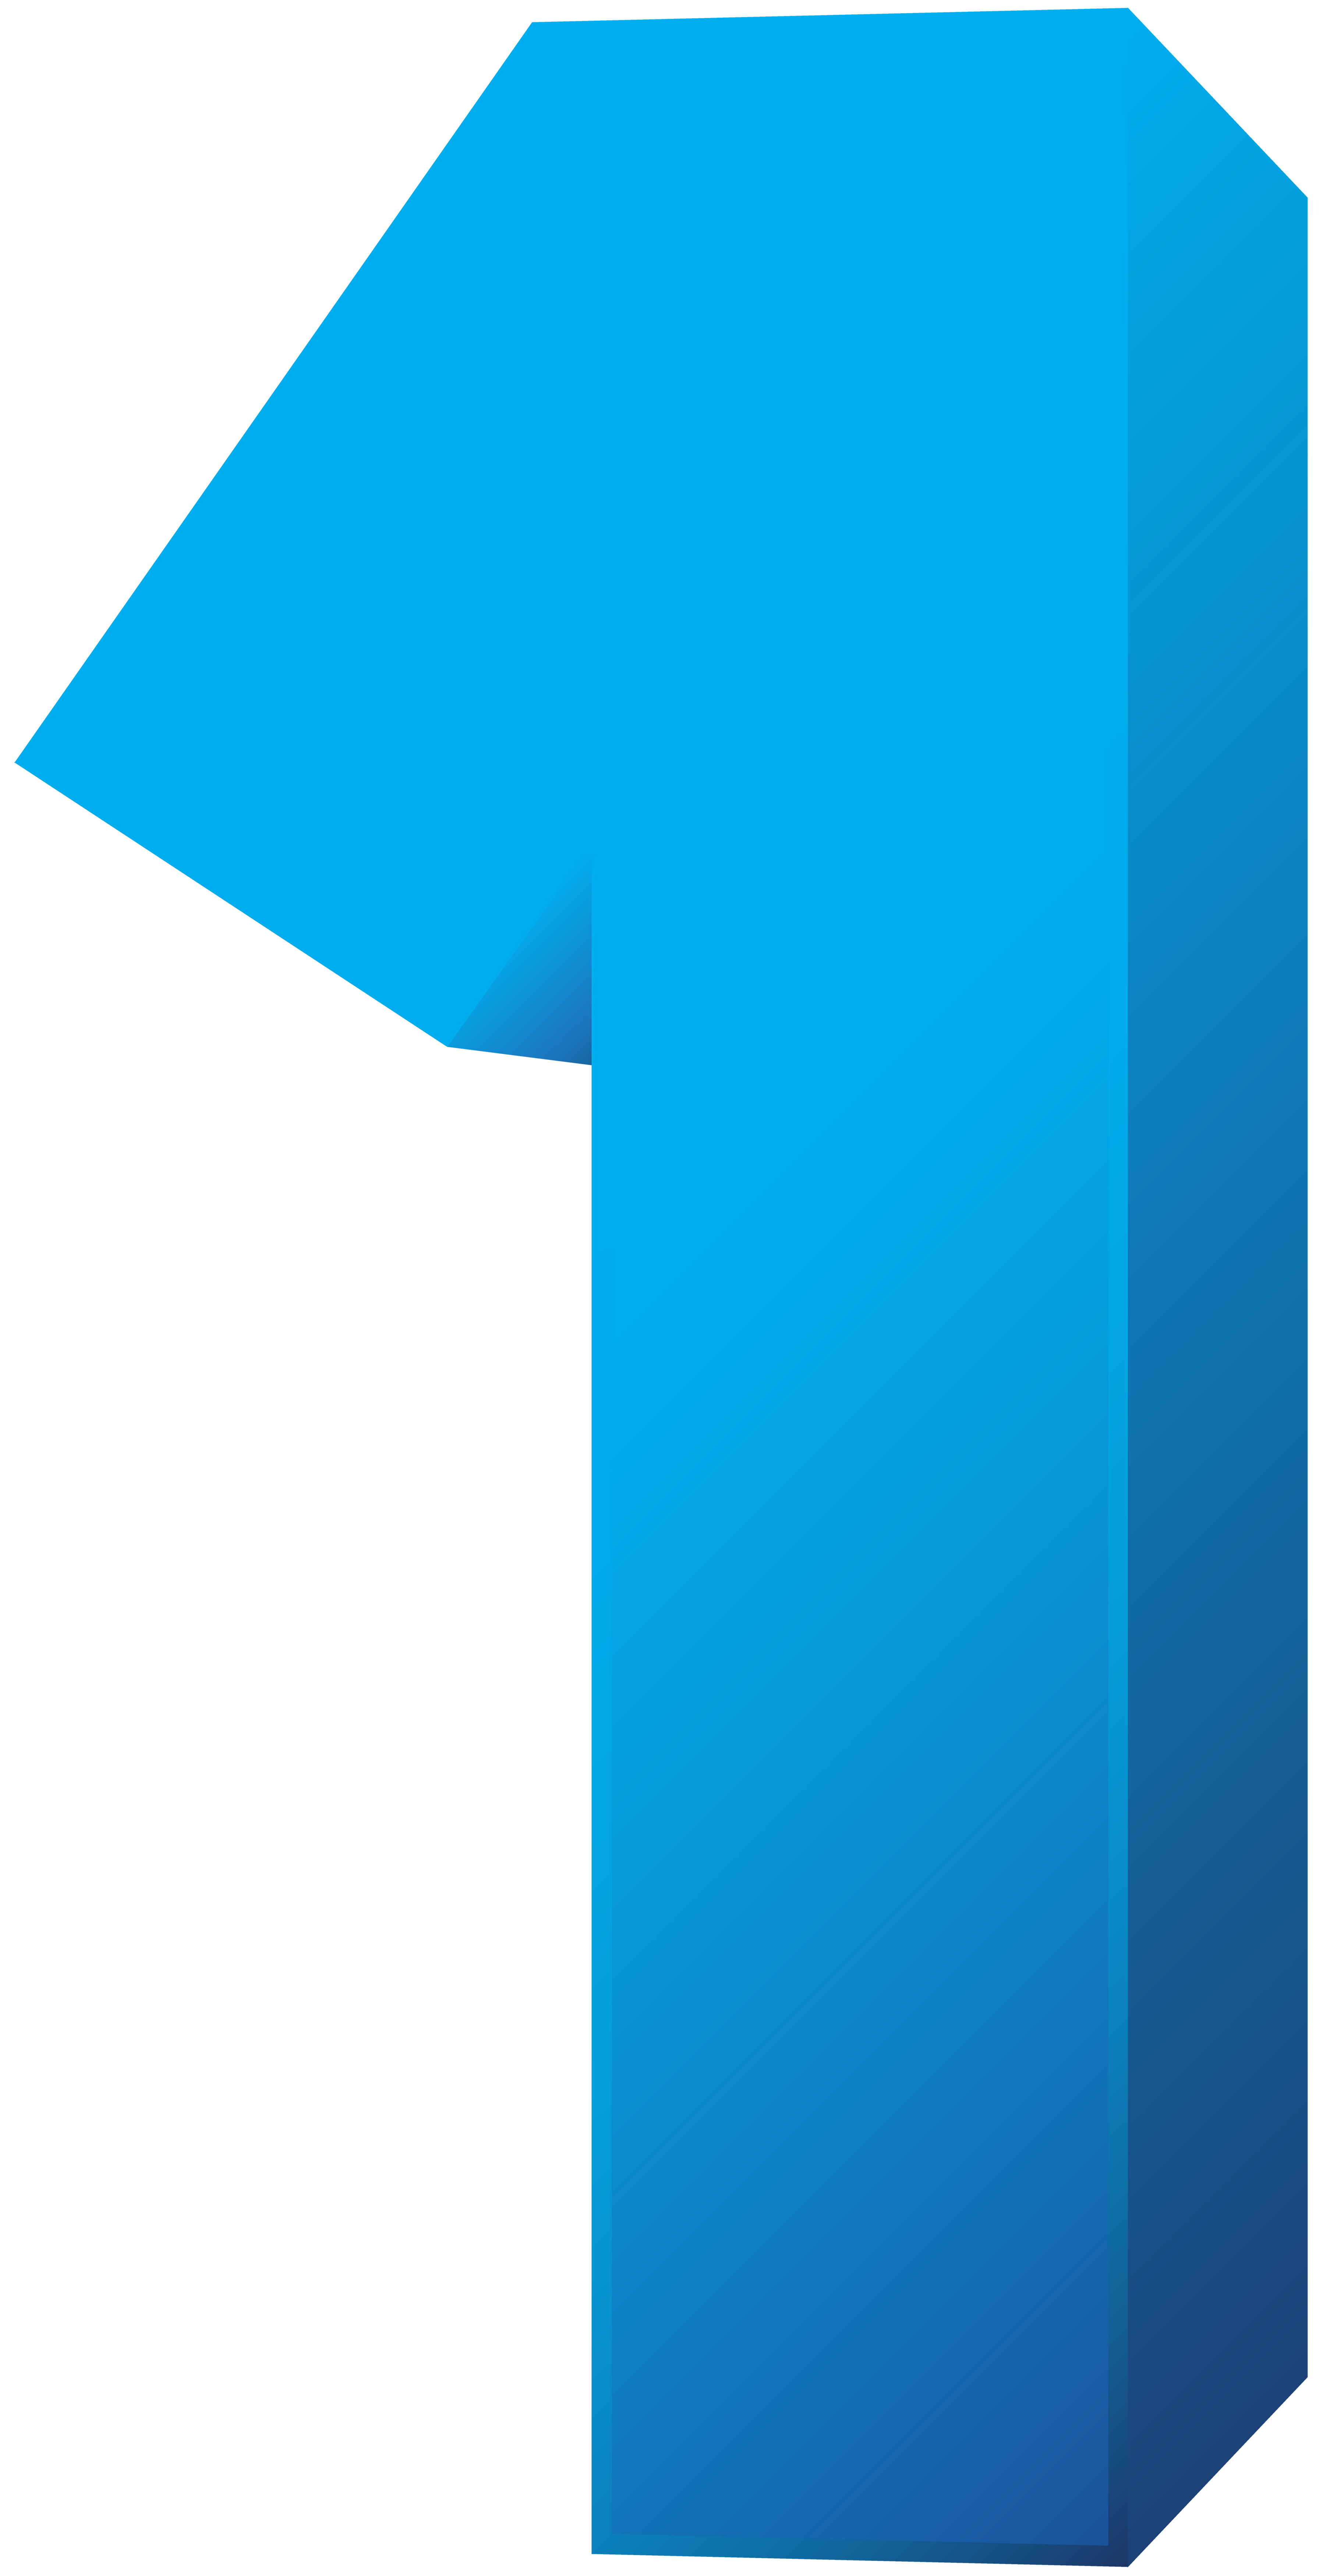 Clipart numbers blue. Number one transparent png